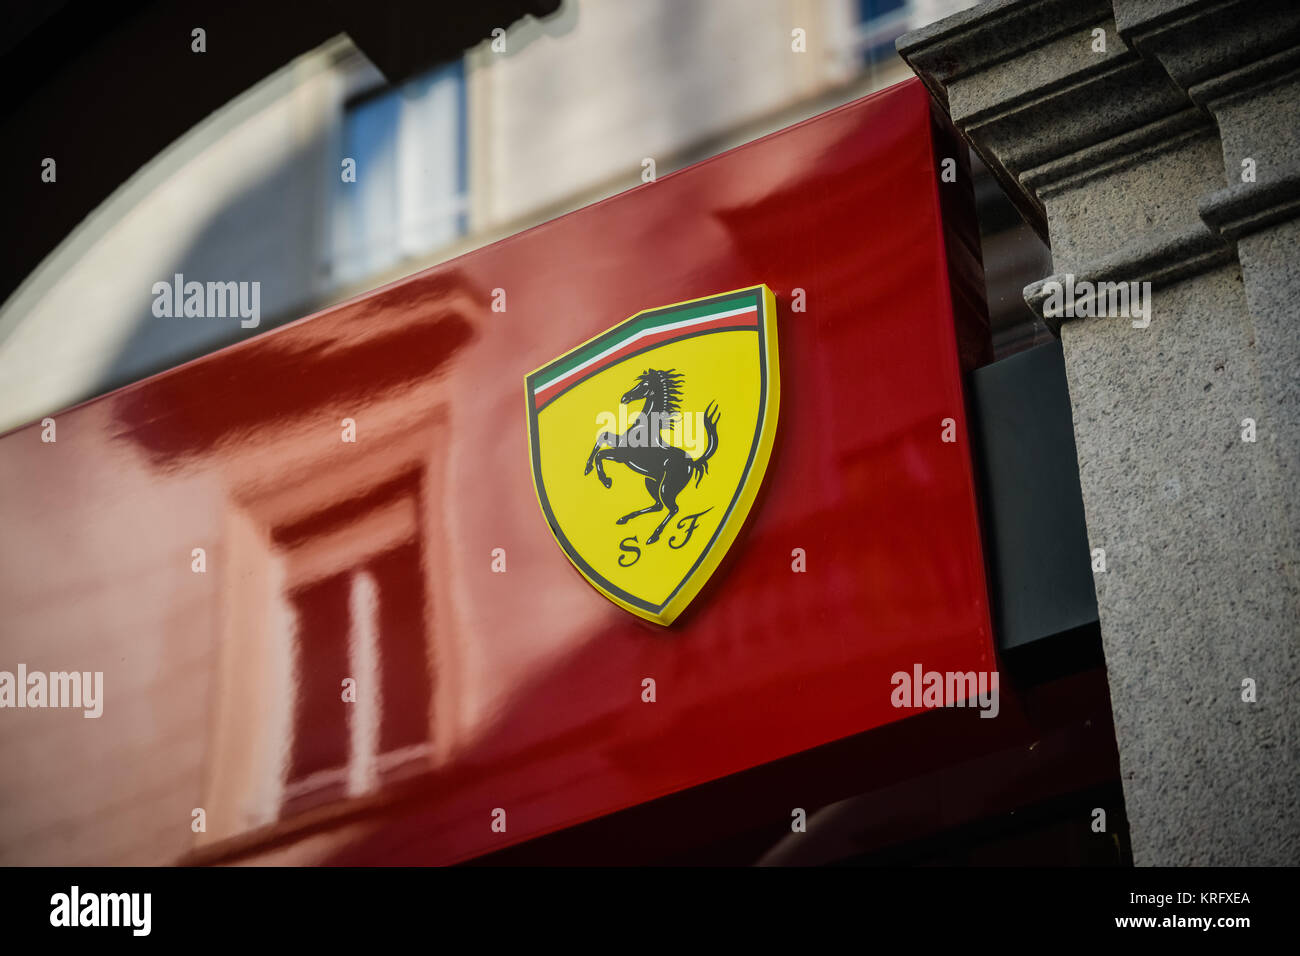 Ferrari clothing store usa